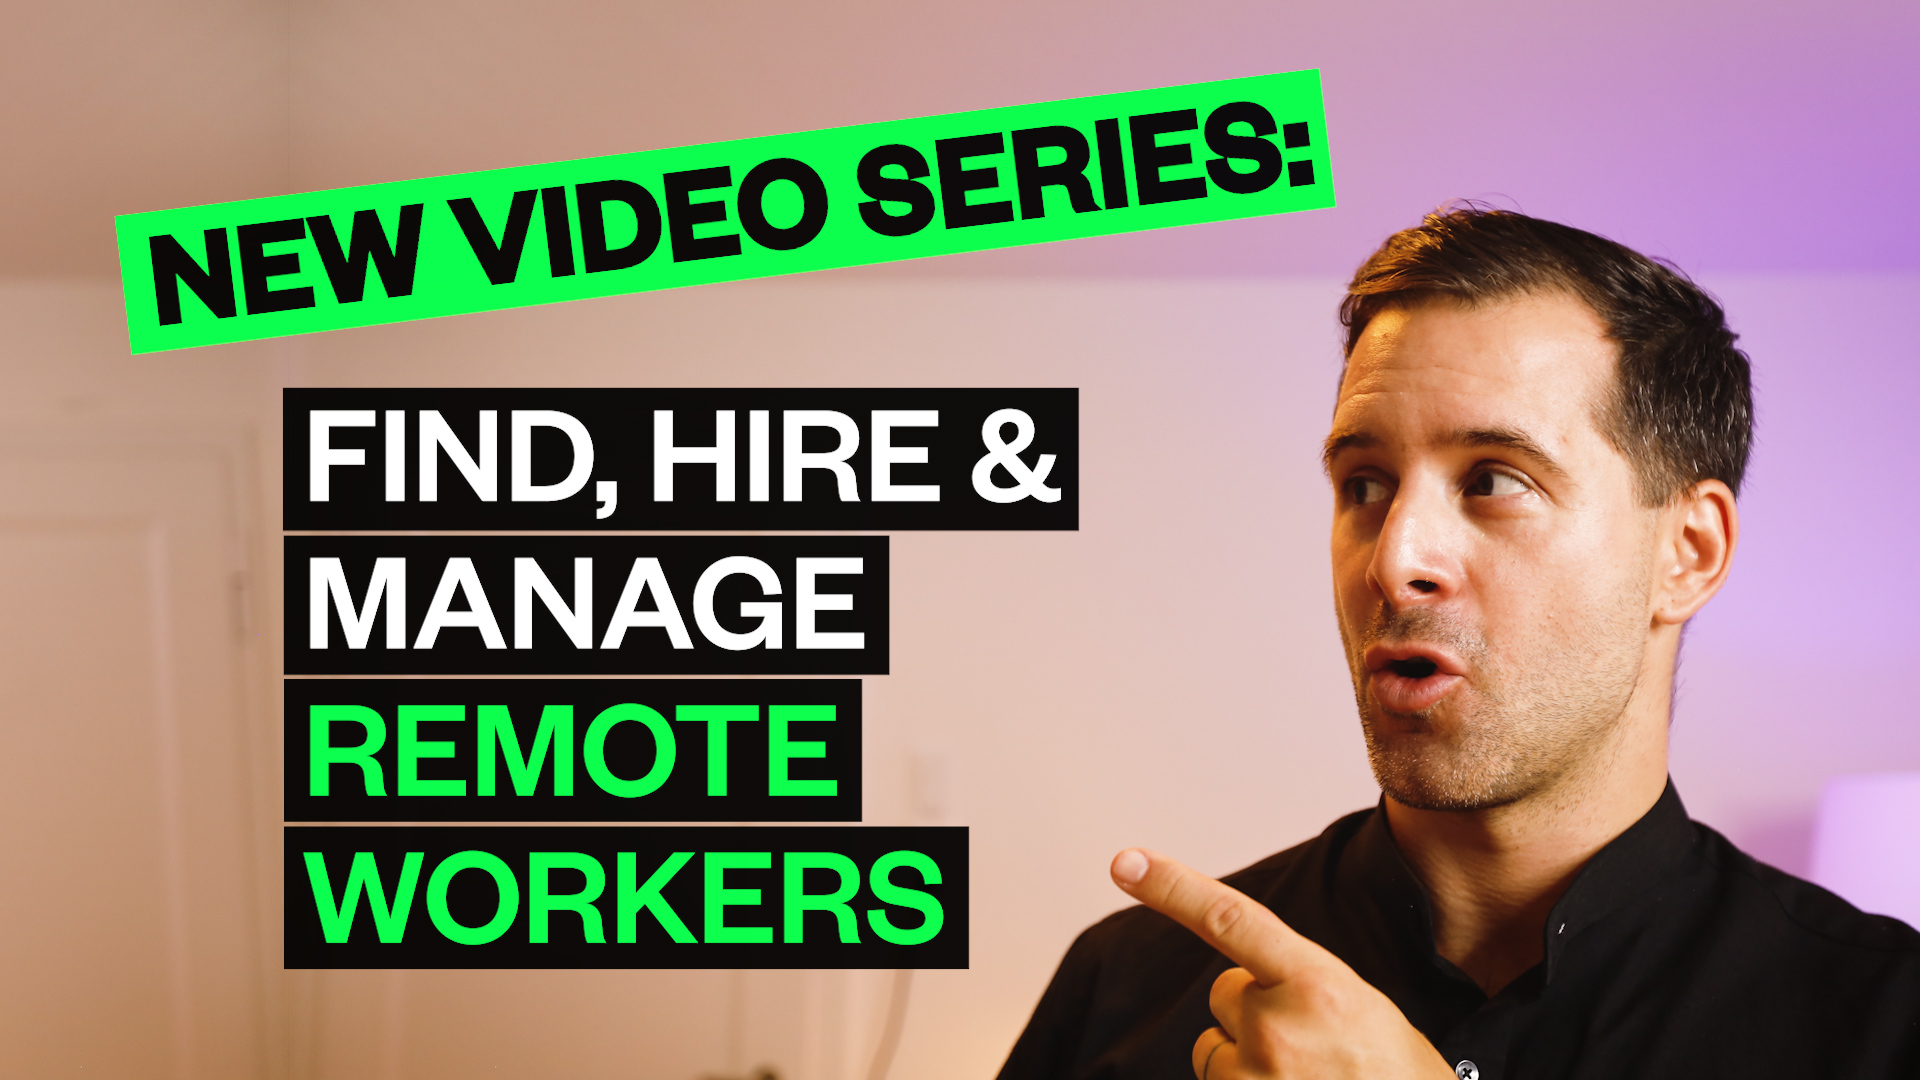 New video series: Find, hire & manage remote workers